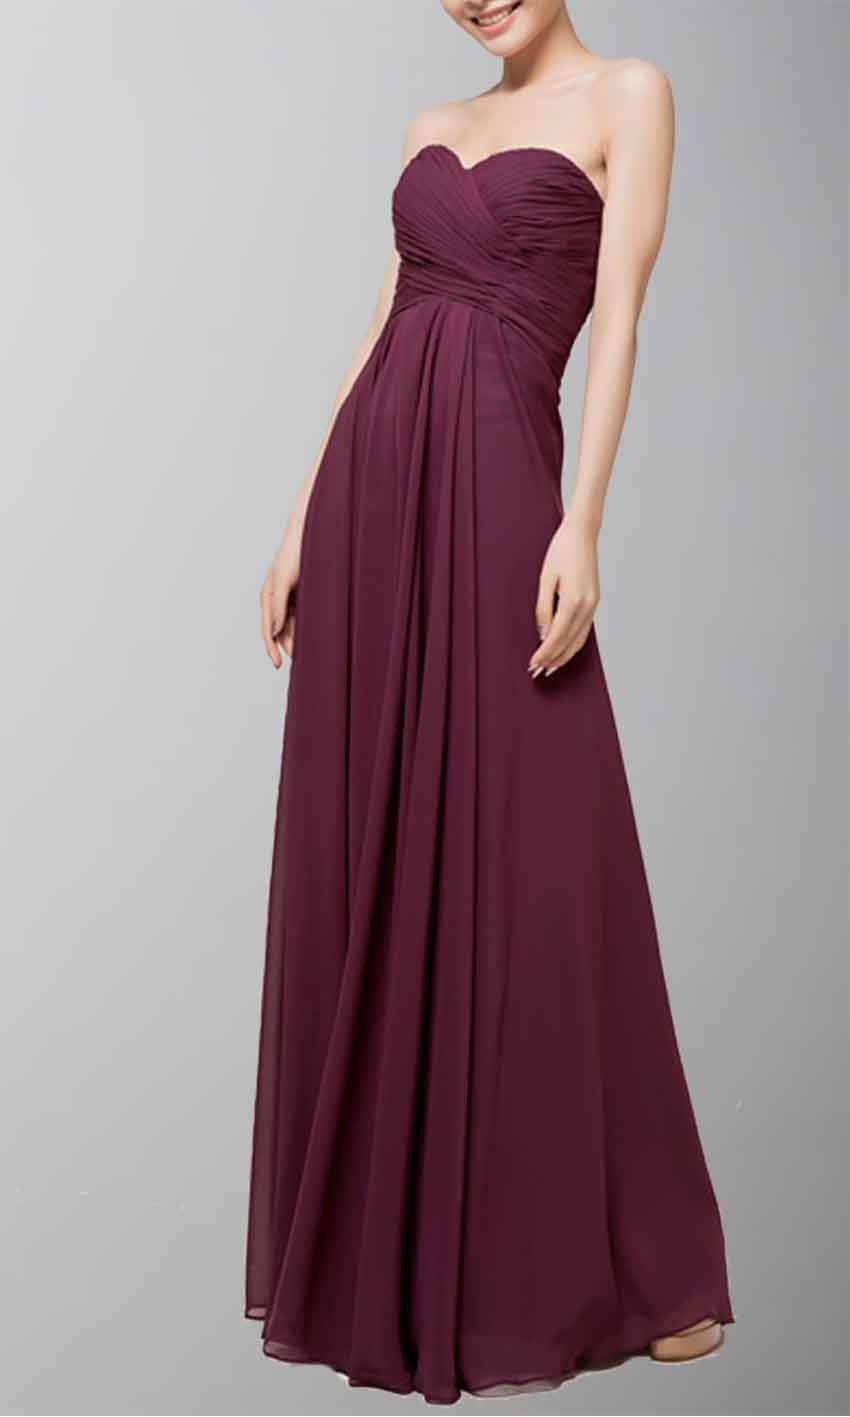 dark purple chiffon bridesmaid dresses